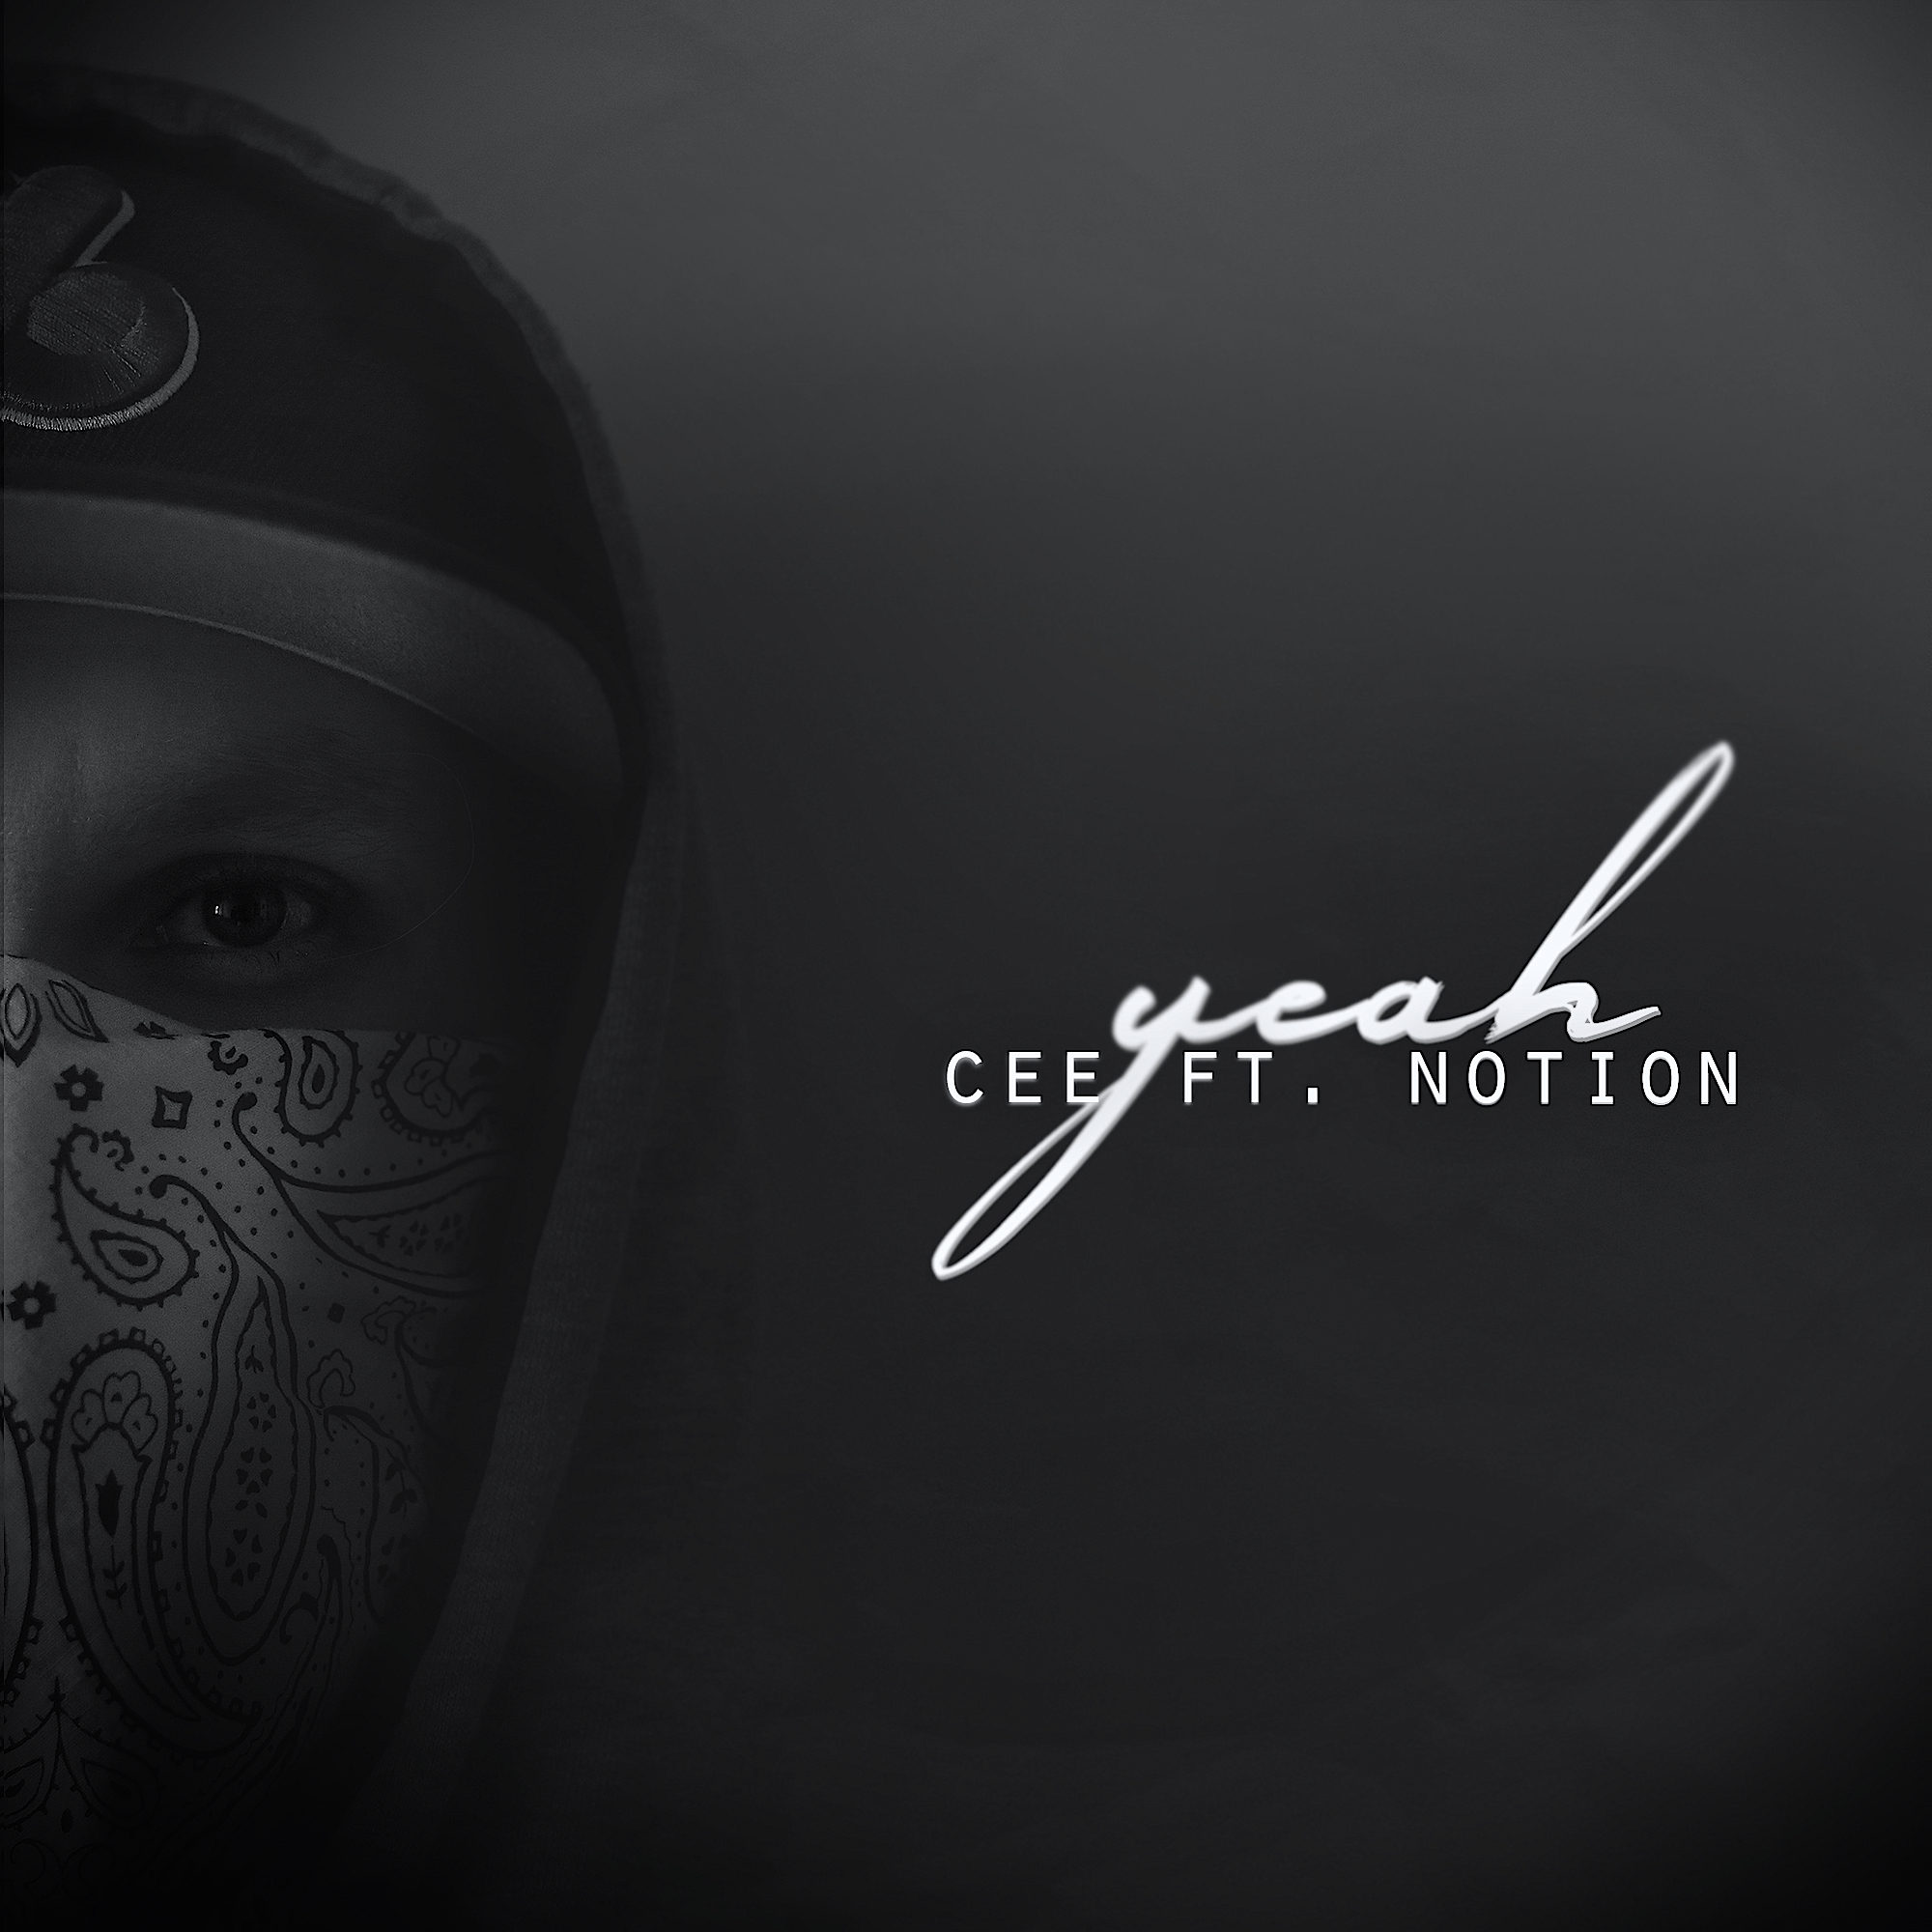 Cee - Yeah ft. Notion (Prod. by Cool FD)